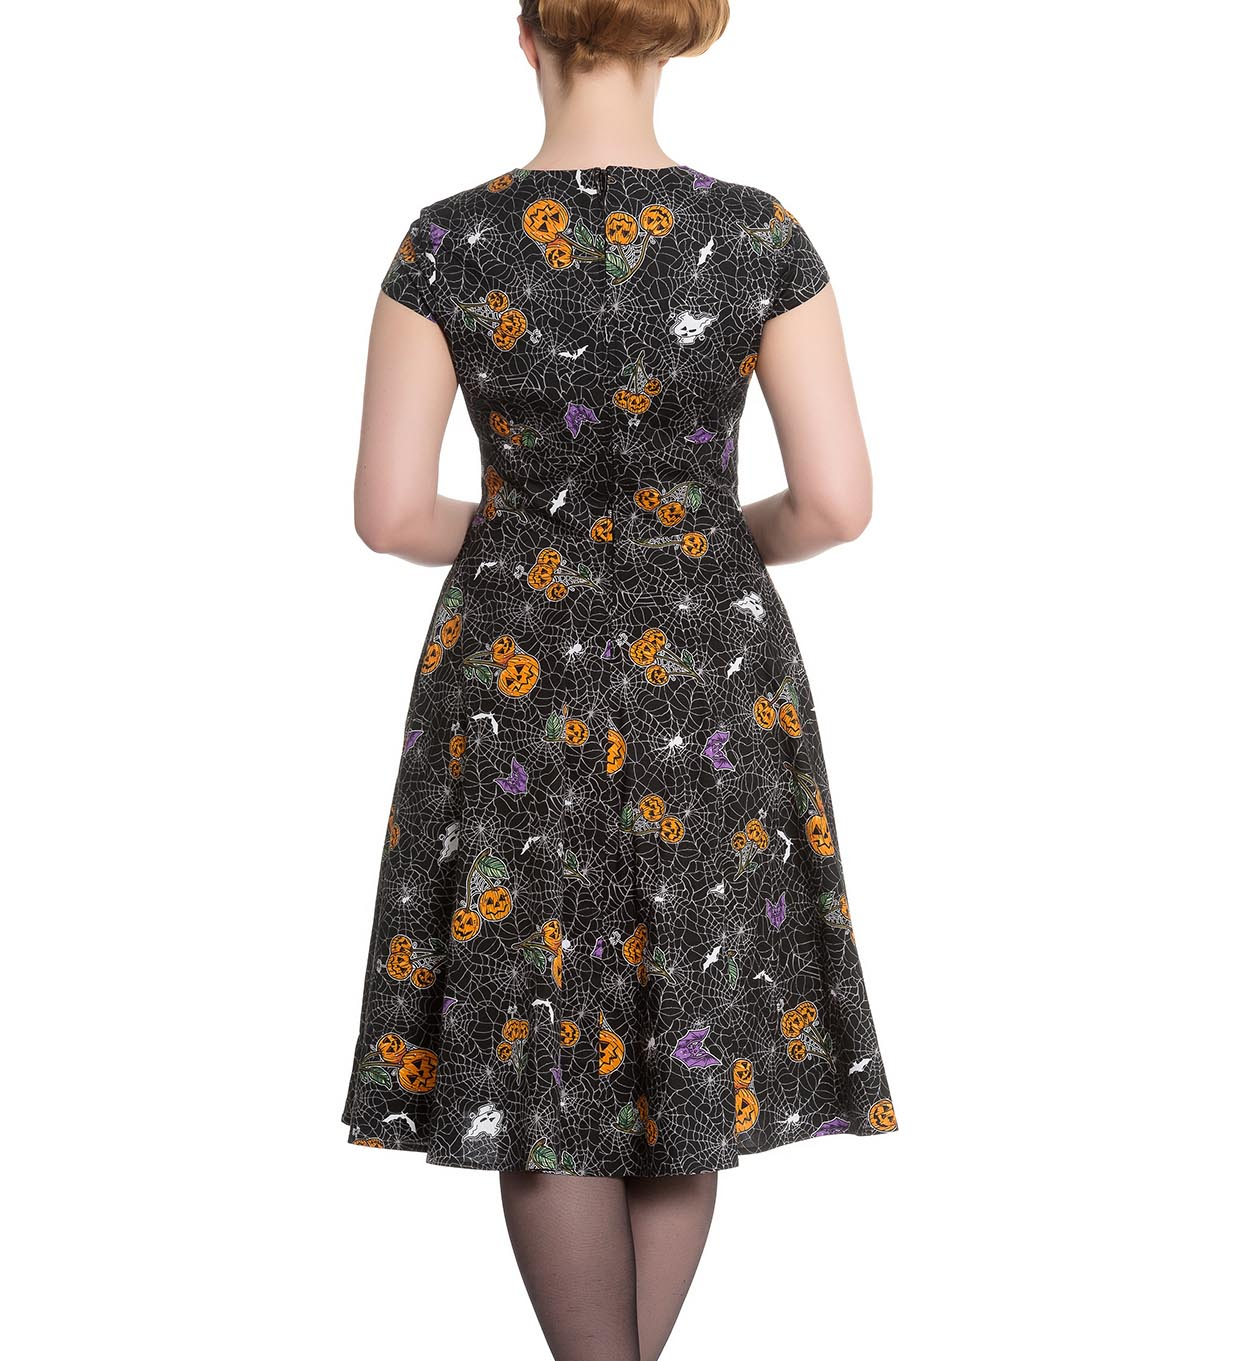 Hell-Bunny-Black-Pinup-50s-Goth-Webs-Dress-HARLOW-Halloween-All-Sizes thumbnail 13